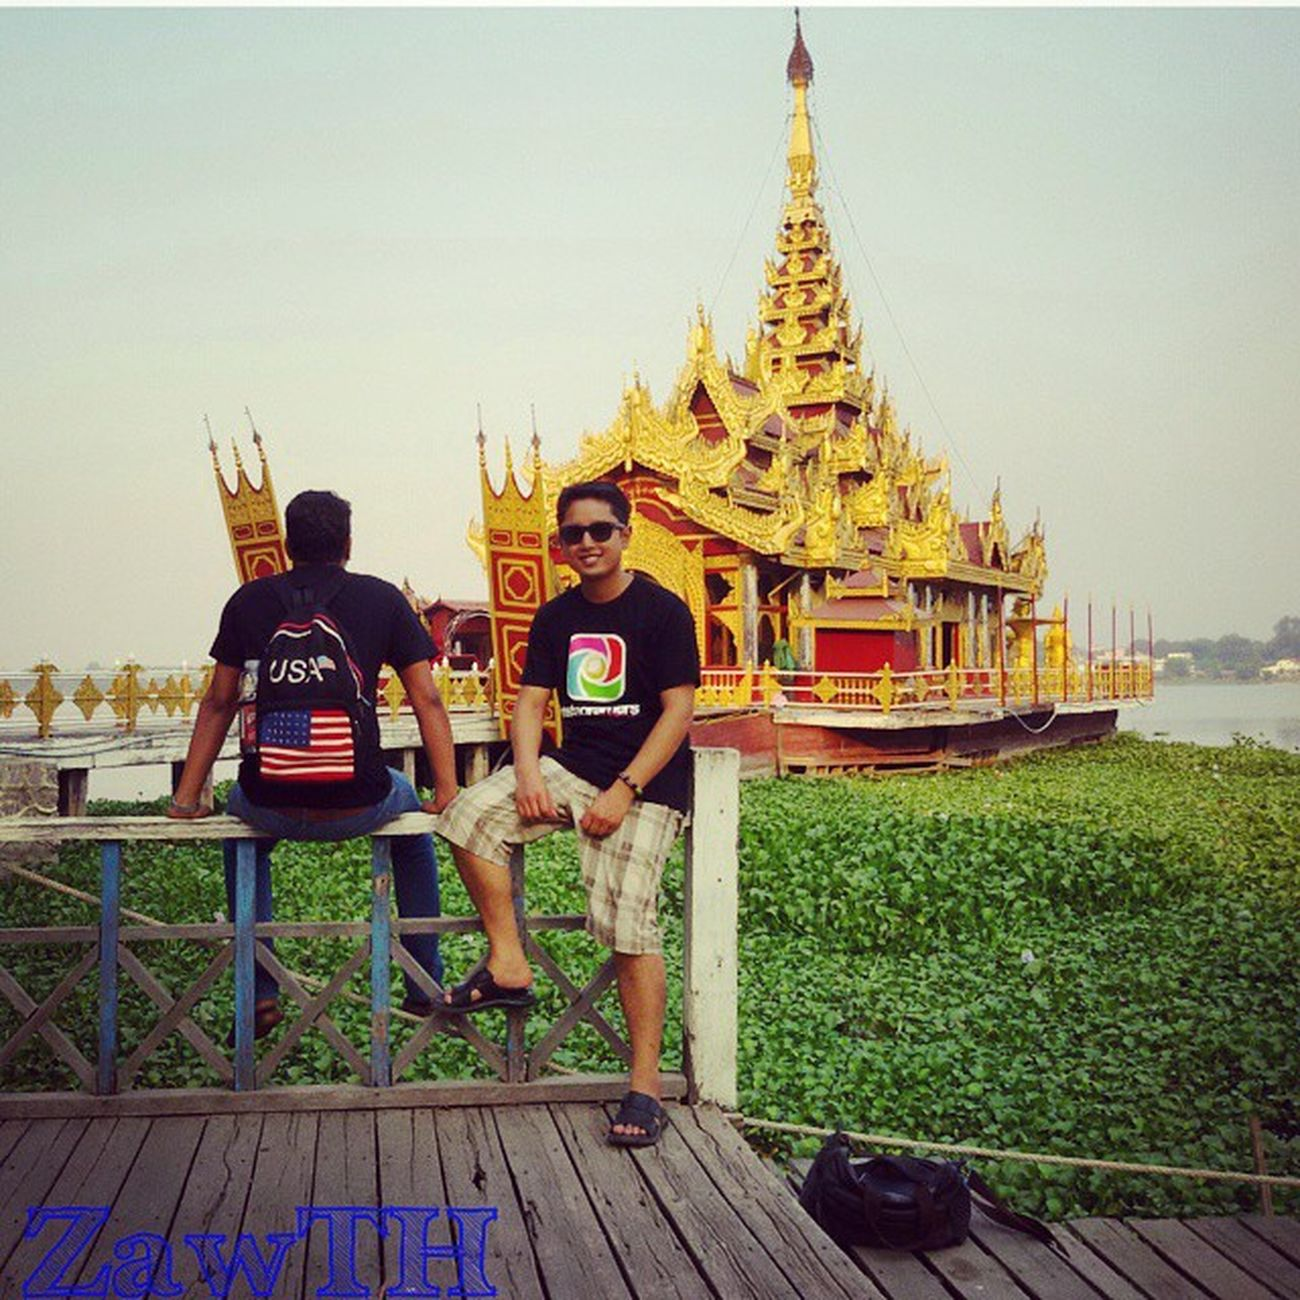 Me and Bro at WWIM11 Mandalay,Myanmar. Mandalay Myanmar Royalboat Igersmyanmar Igersmandalay Vscomyanmar Igglobal Instameet Asianguy Igguy Nepaleseguy Nepaleseboy Wwim11 Wwim11myanmar Rcnocrop